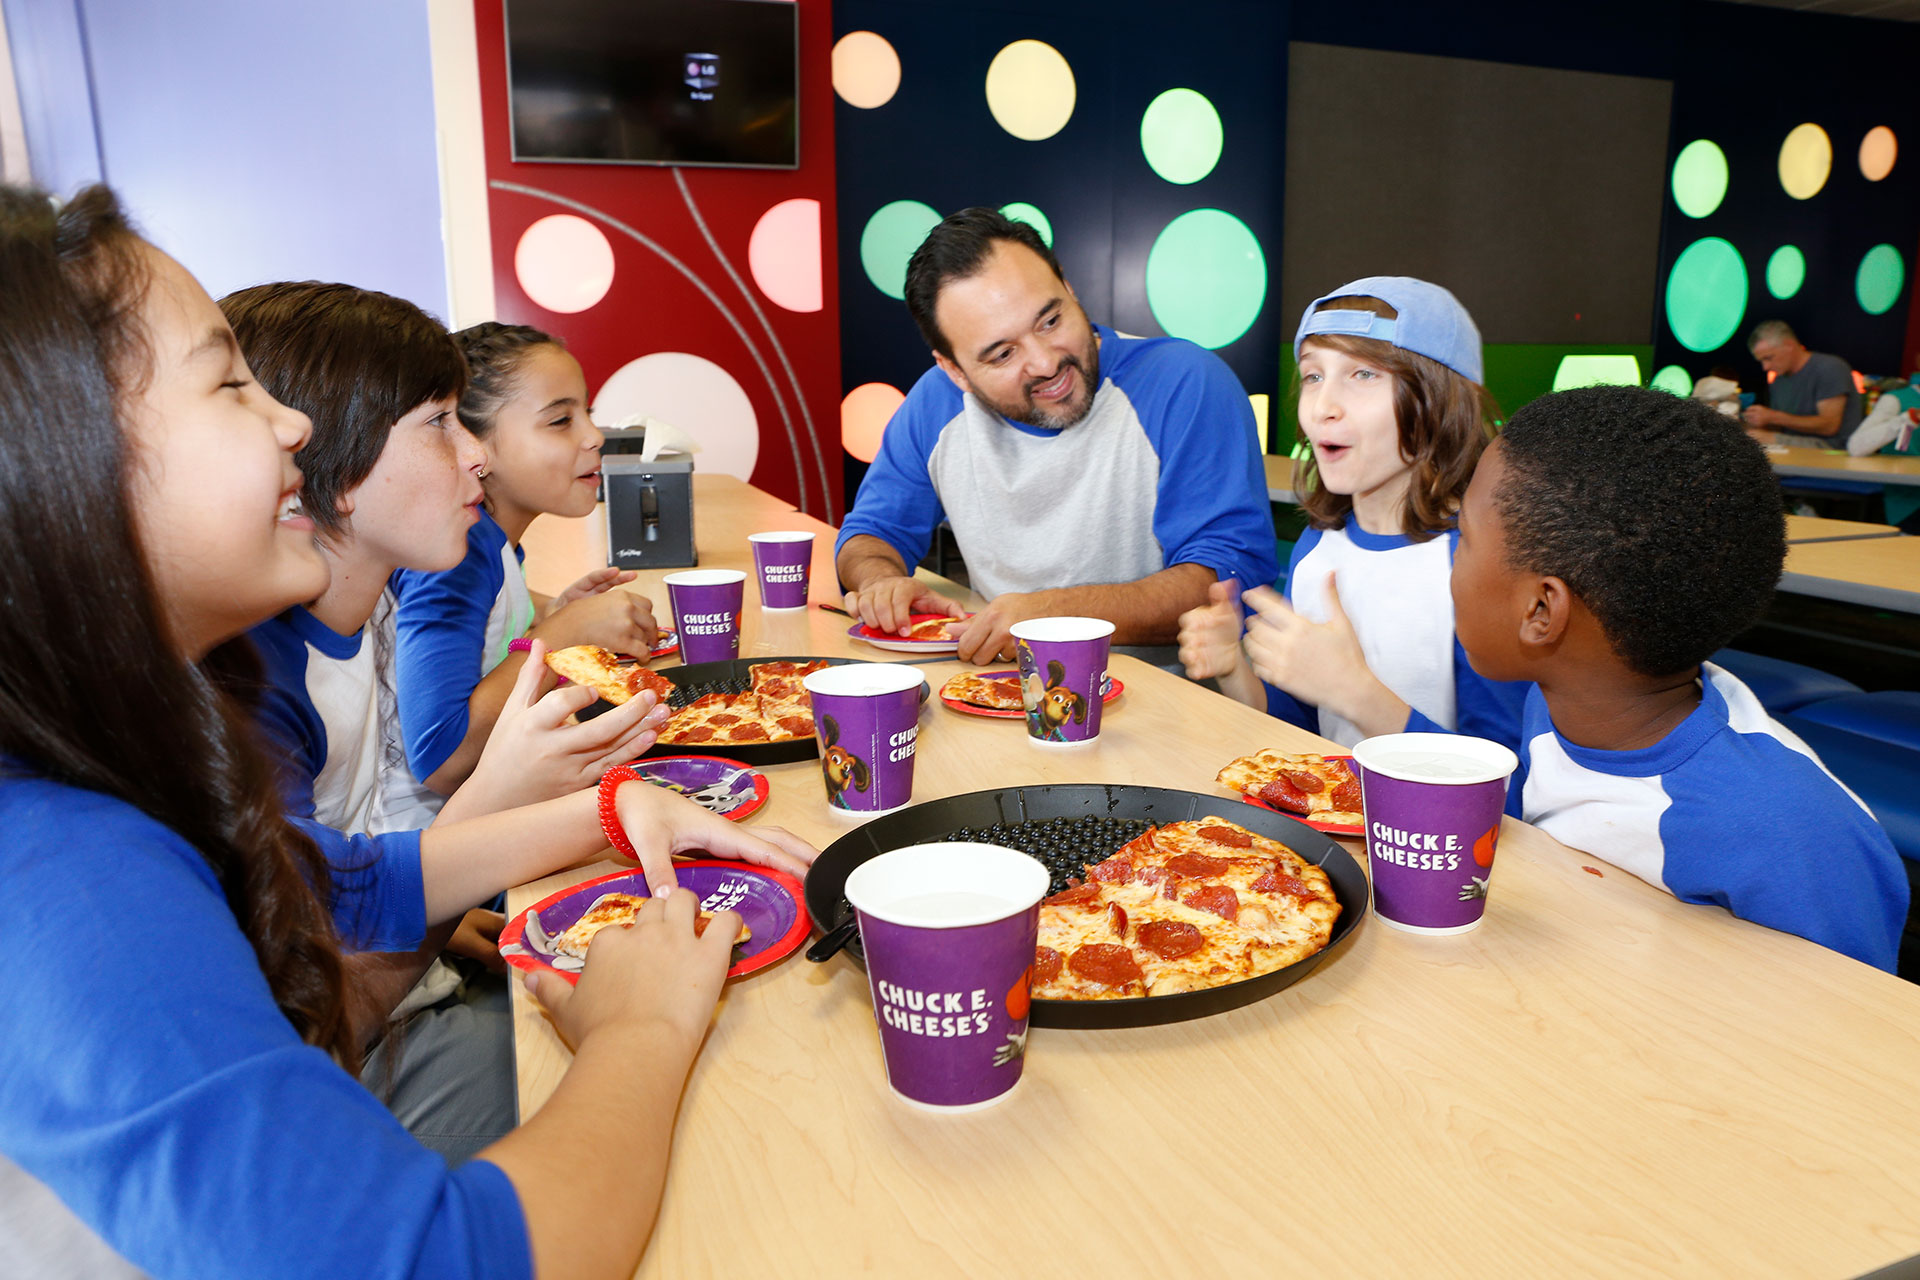 Kids team at table eating pizza